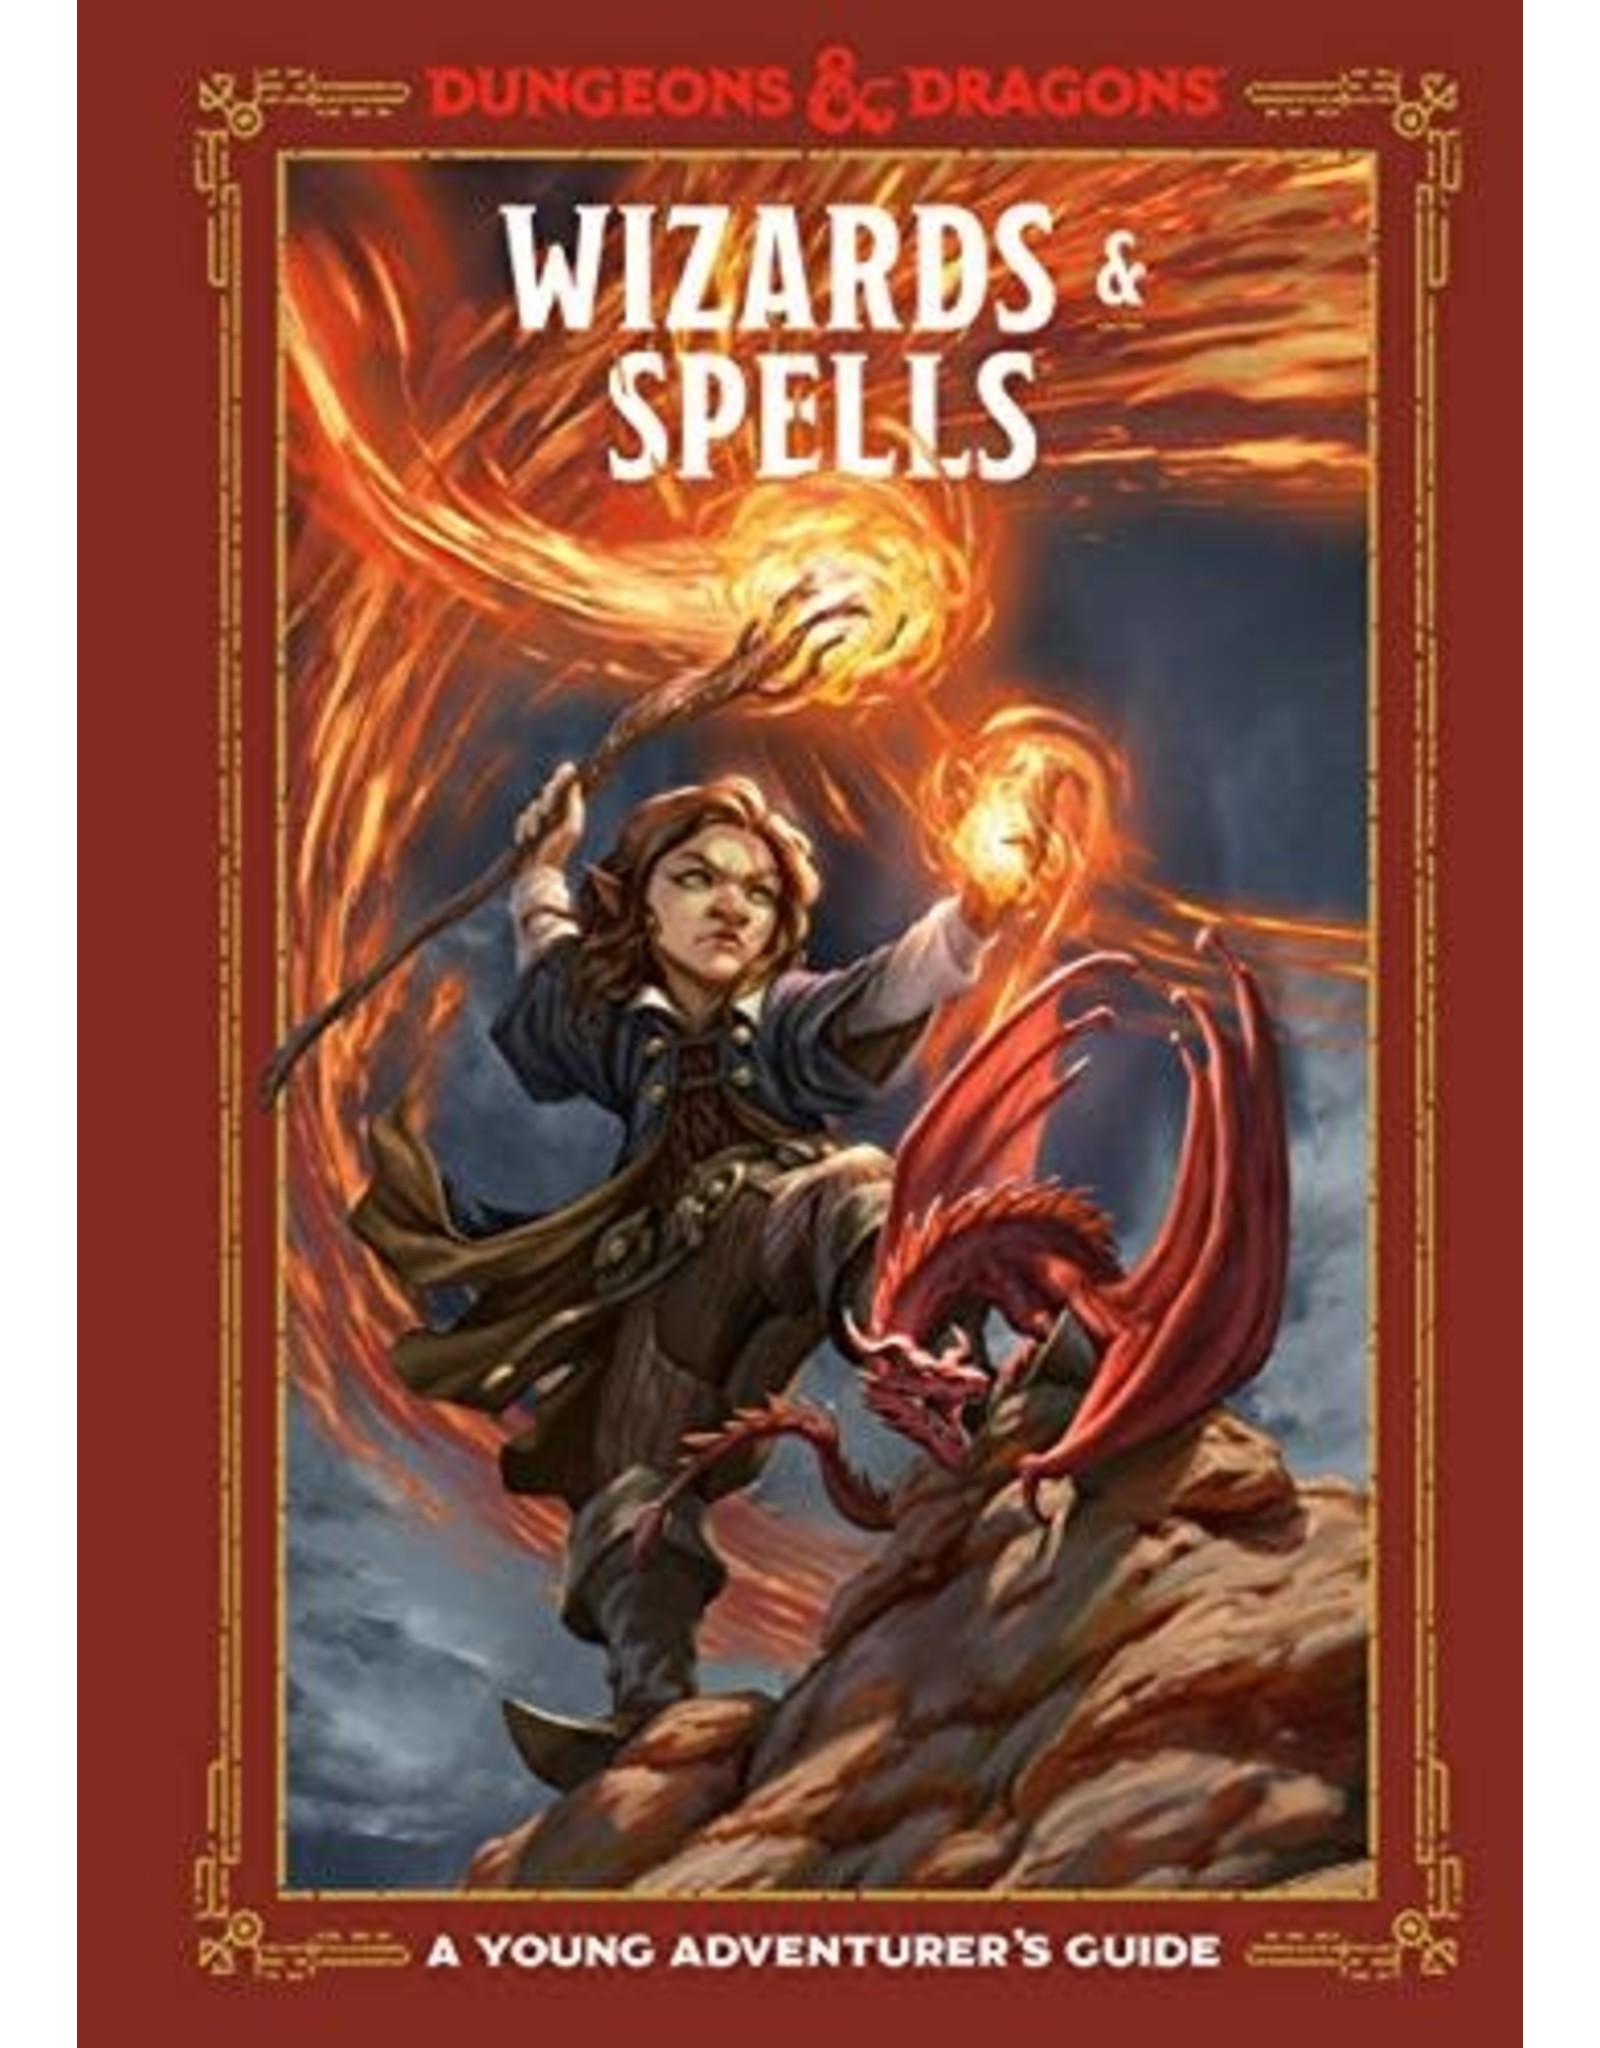 WIZARDS OF THE COAST D&D YOUNG ADVENTURERS GUIDE WIZARDS & SPELLS